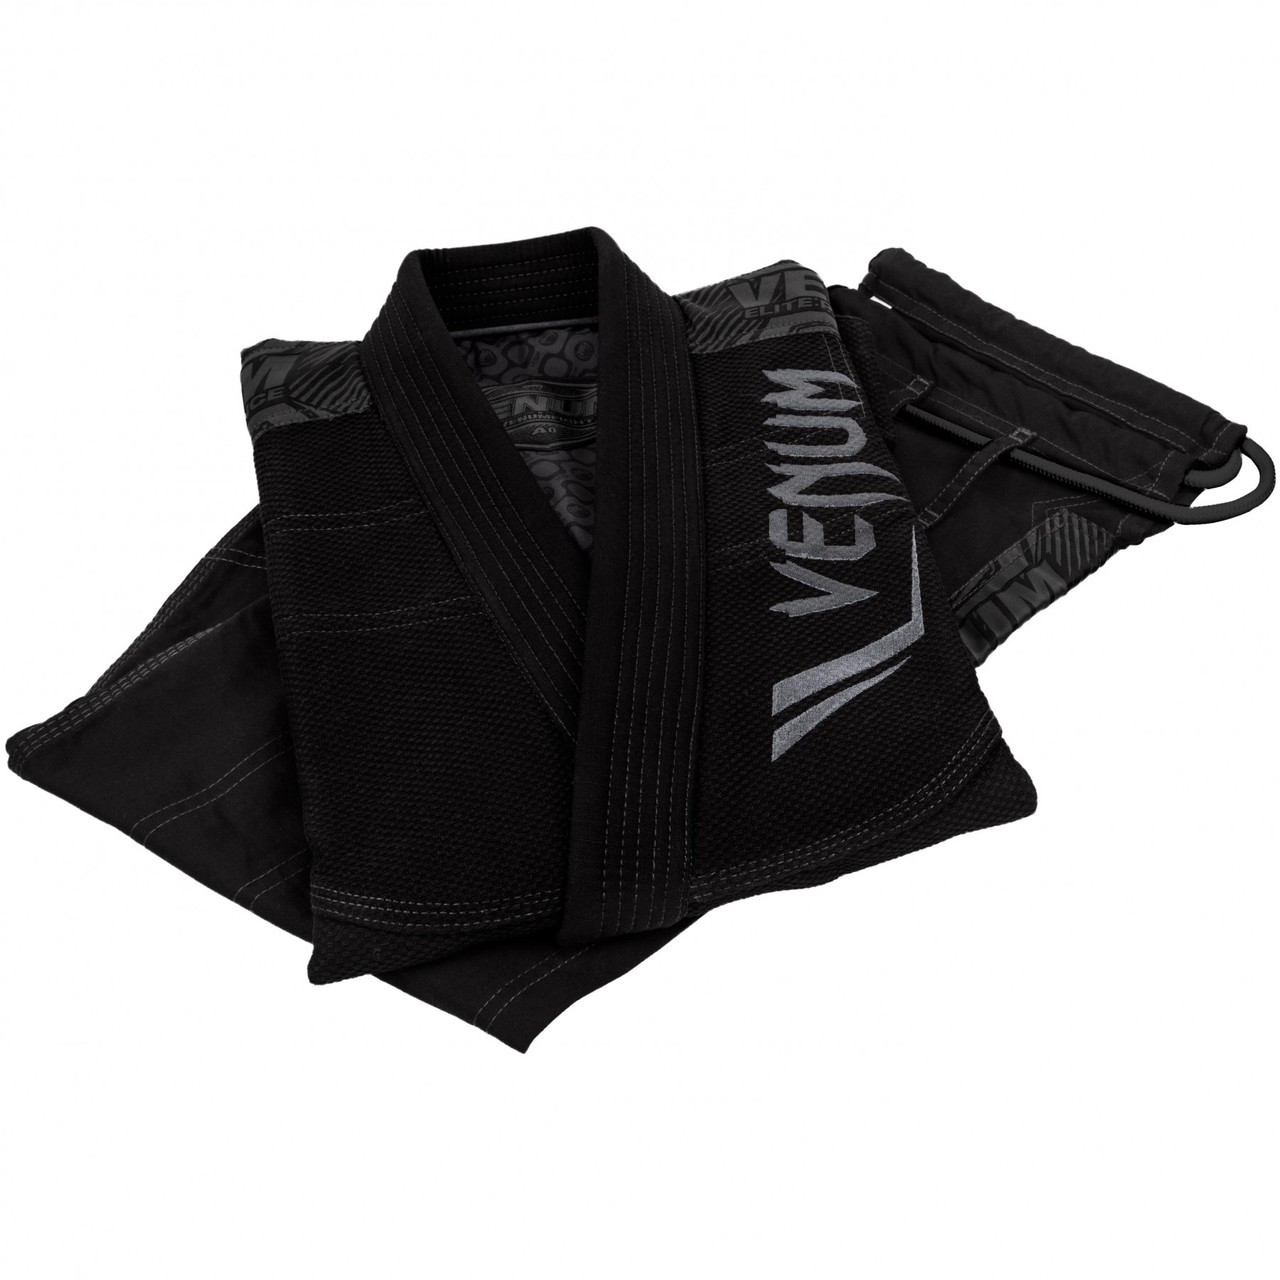 Folded gi Venum Elite BJJ GI in Black on black  is now available at www.thejiujitsushop.com  Enjoy Free Shipping from The Jiu Jitsu Shop today!